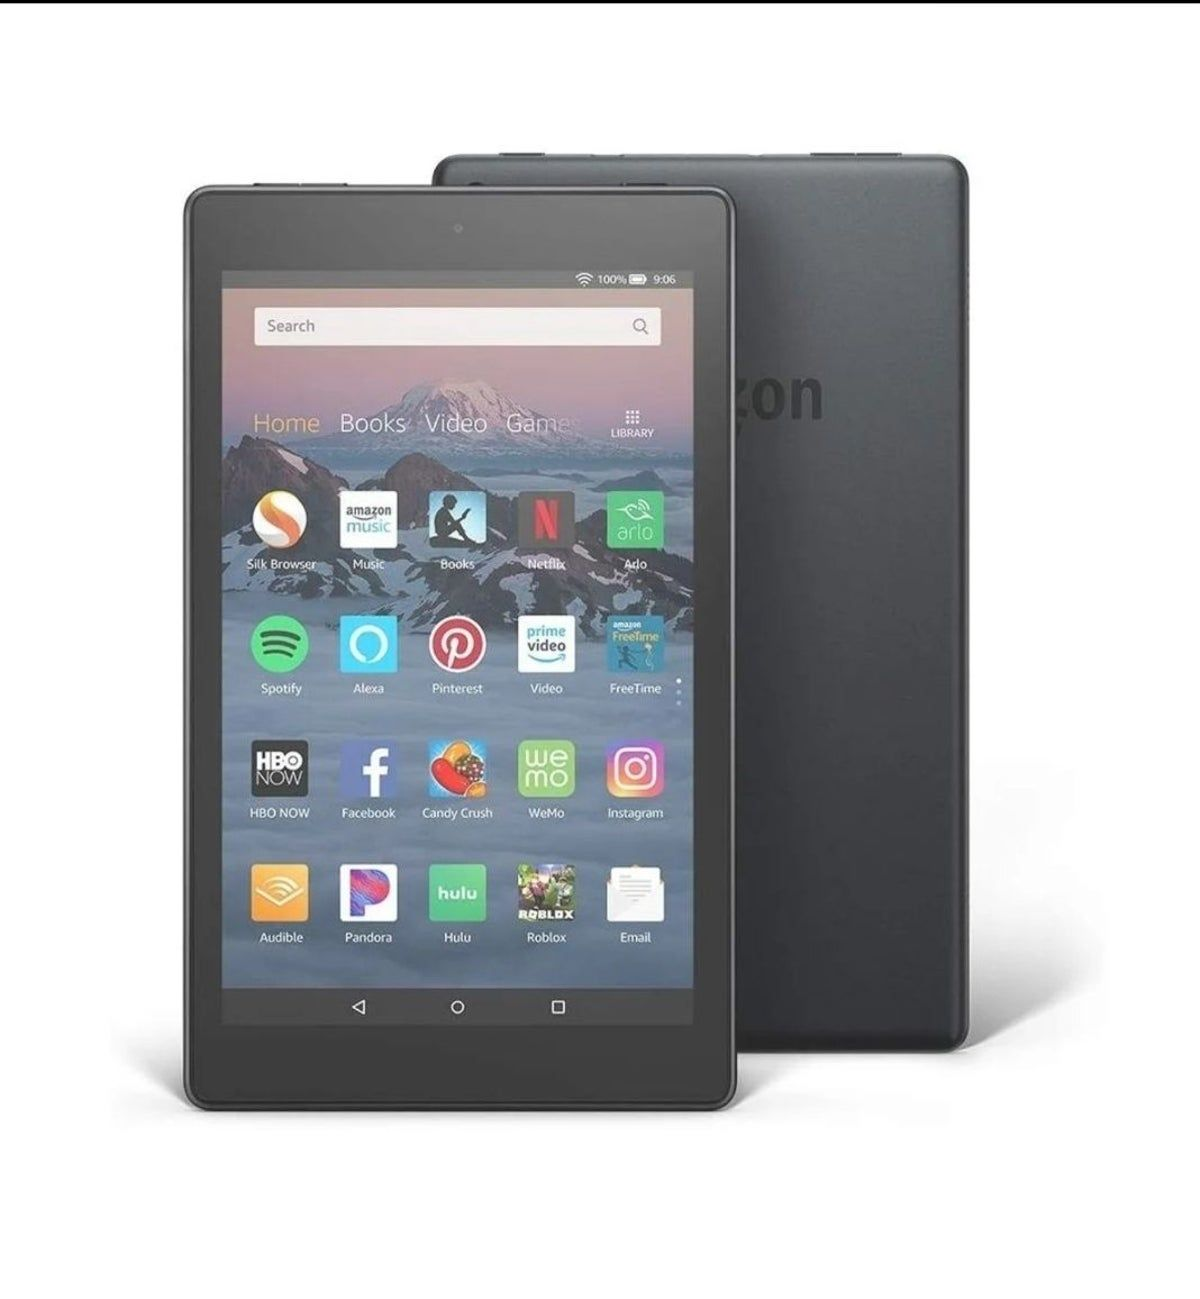 Fire hd 8 tablet 8 hd display 16 gb with images